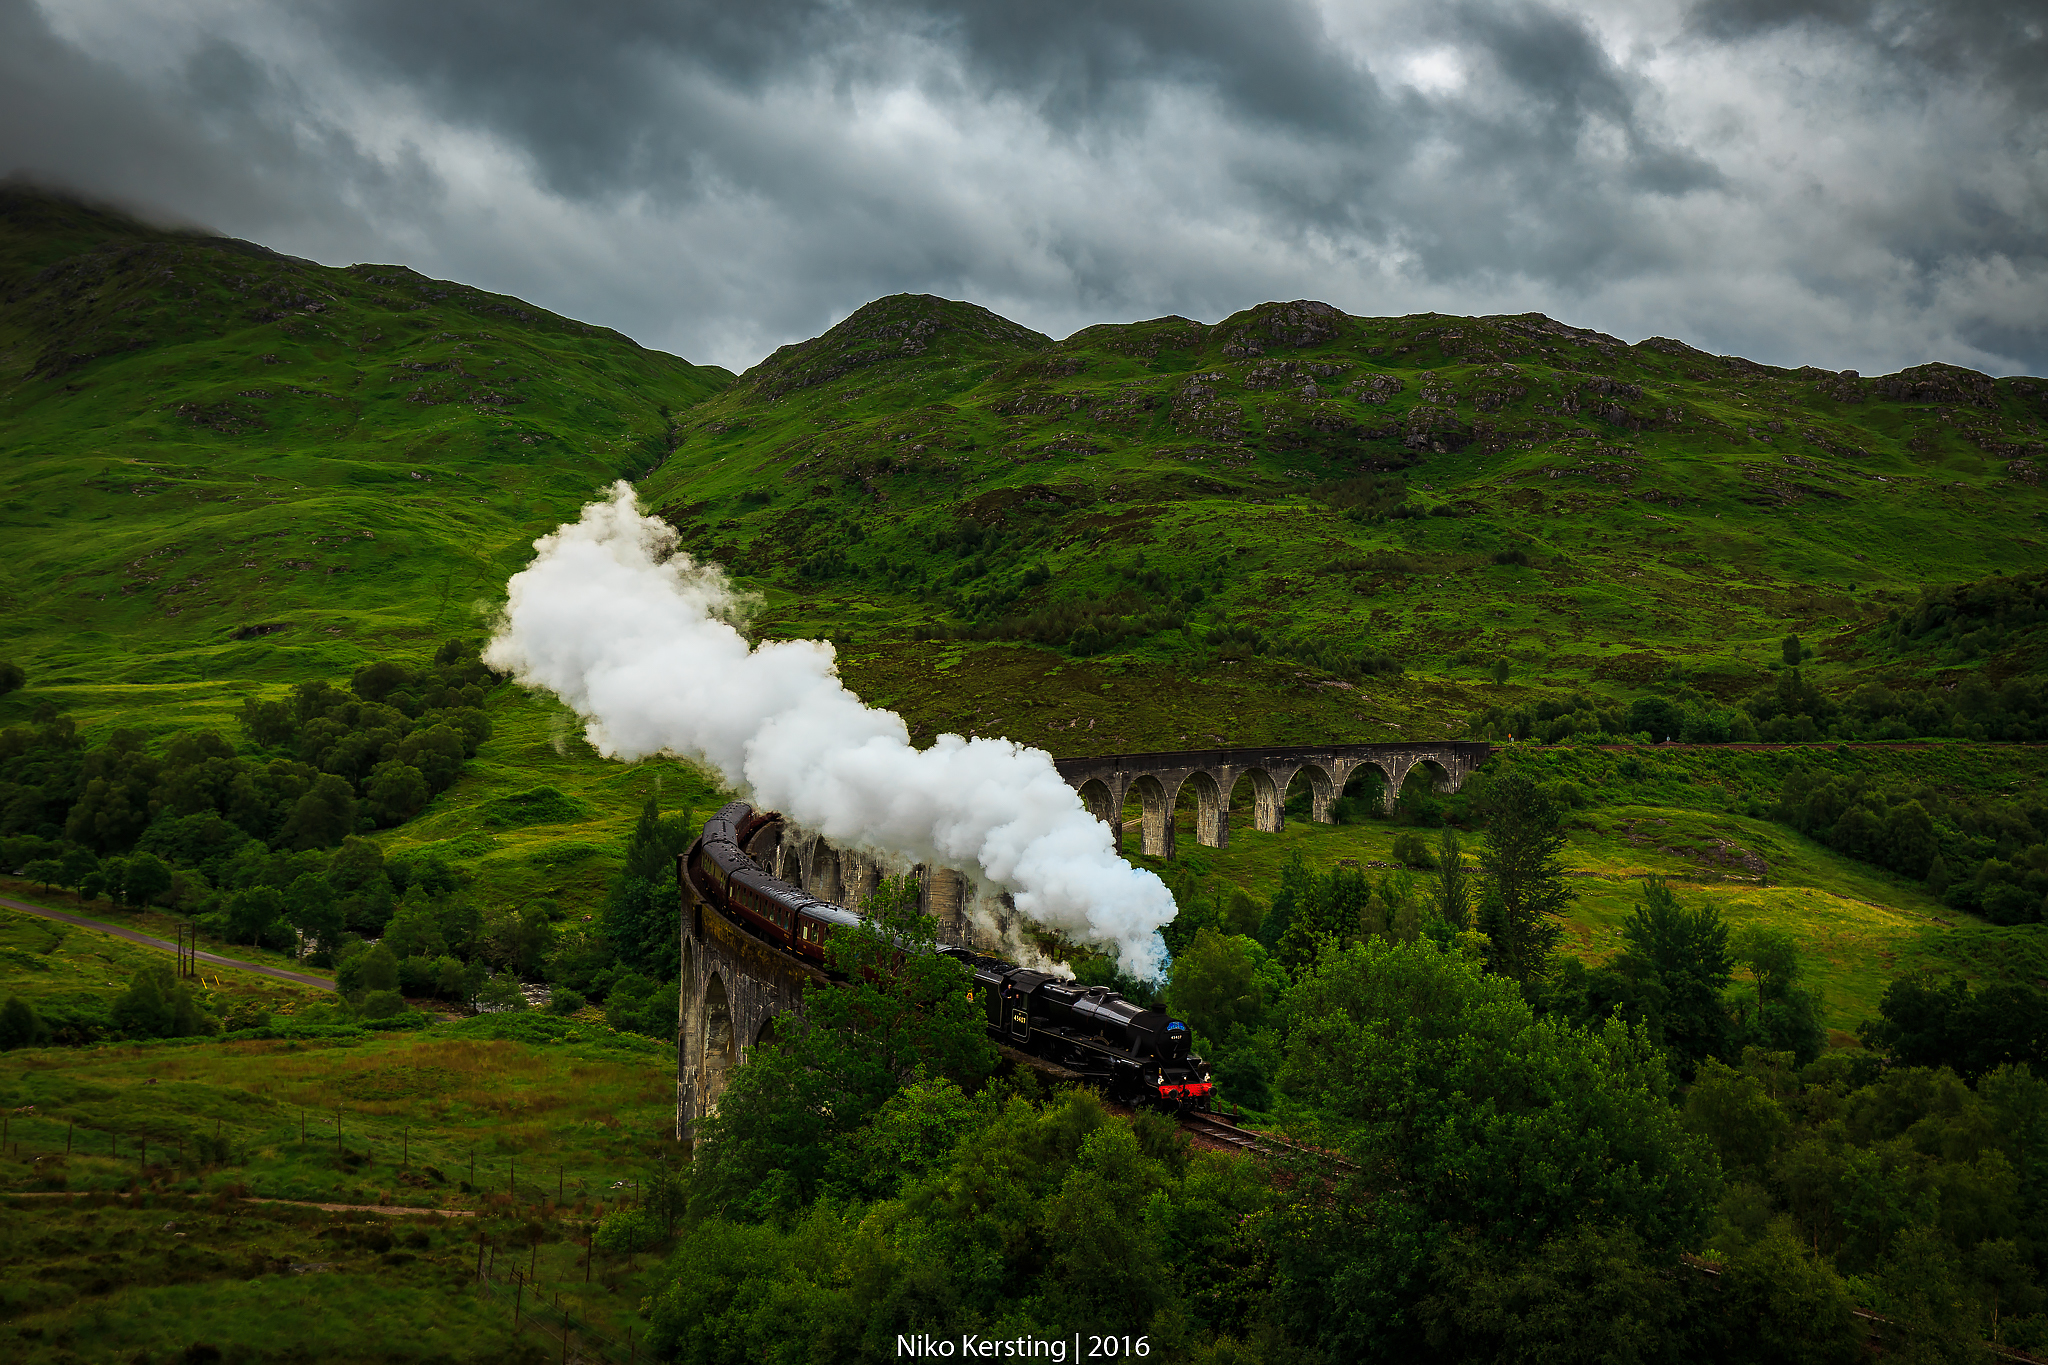 Glenfinnan Viaduct, United Kingdom